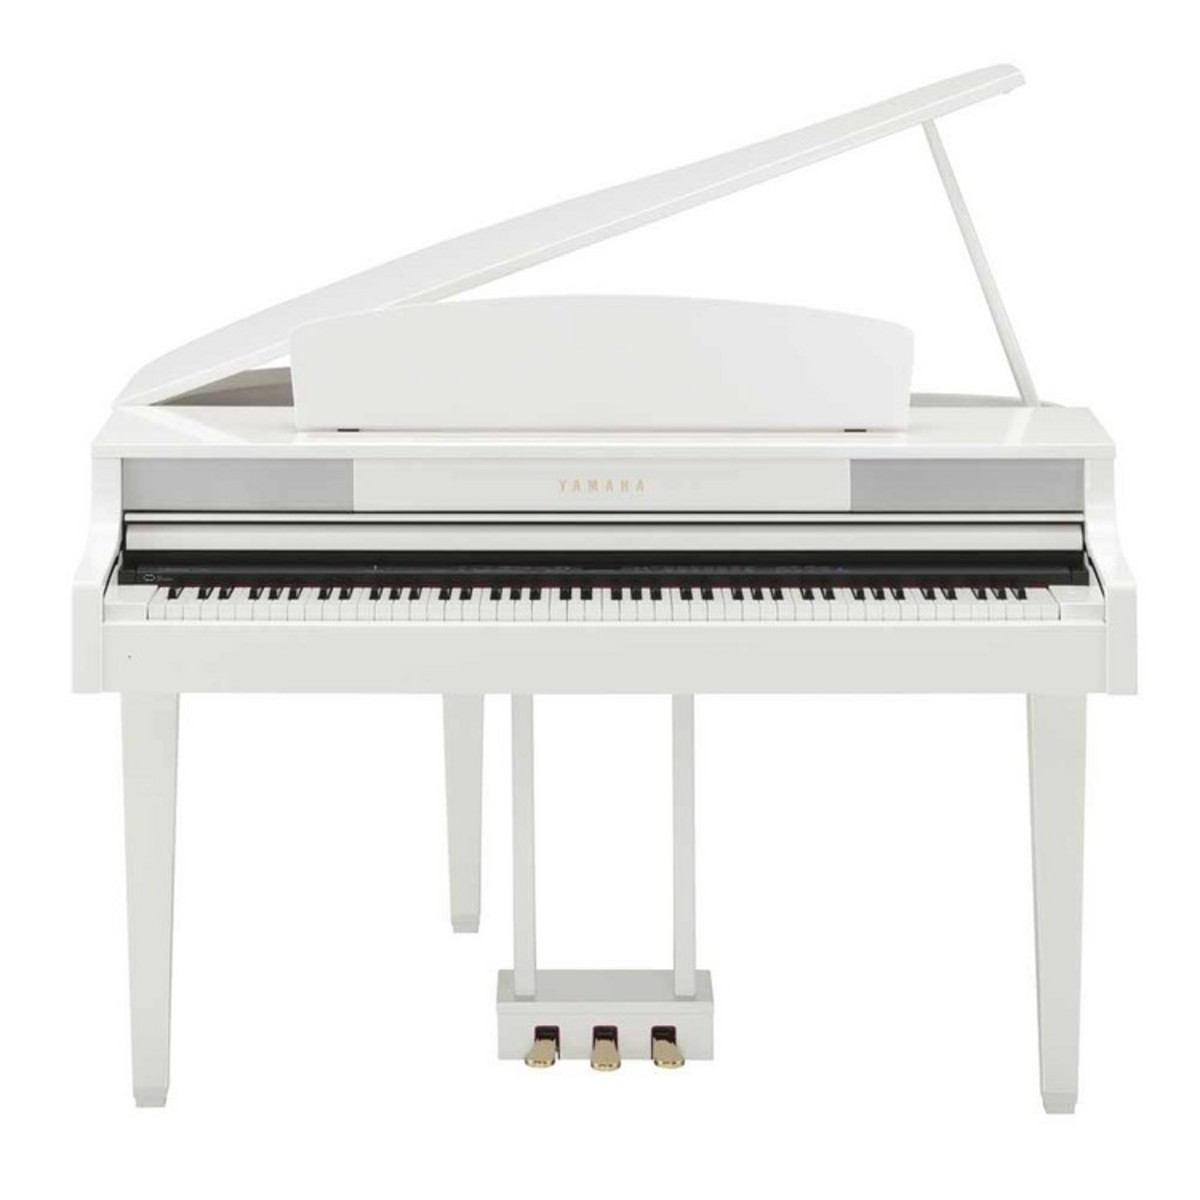 Yamaha clp465 piano queue blanc brillant avec banc for Piano blanc a queue